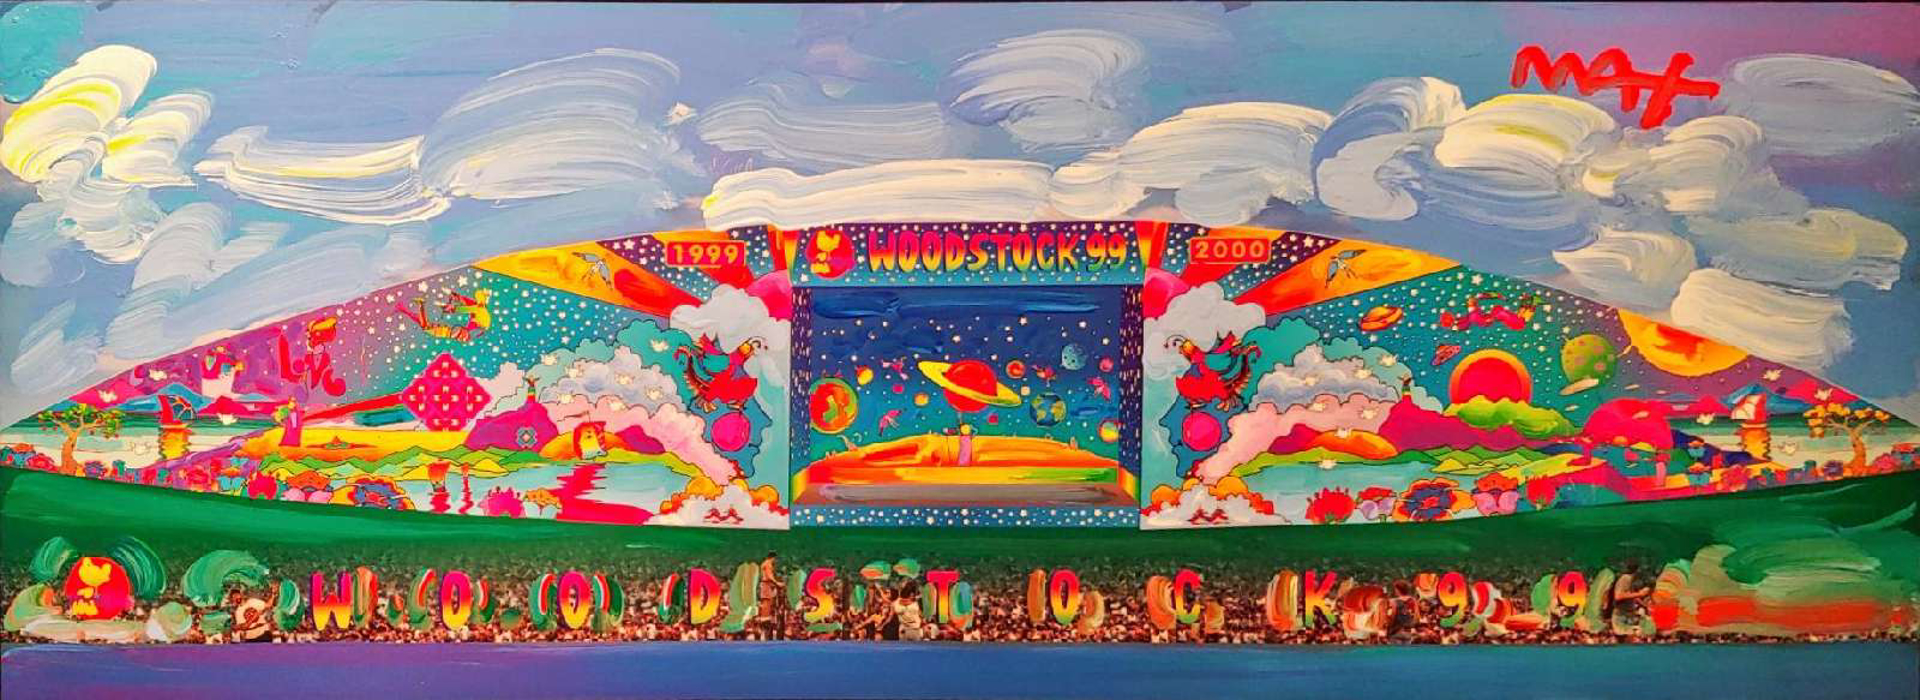 WOODSTOCK 99 by Peter Max